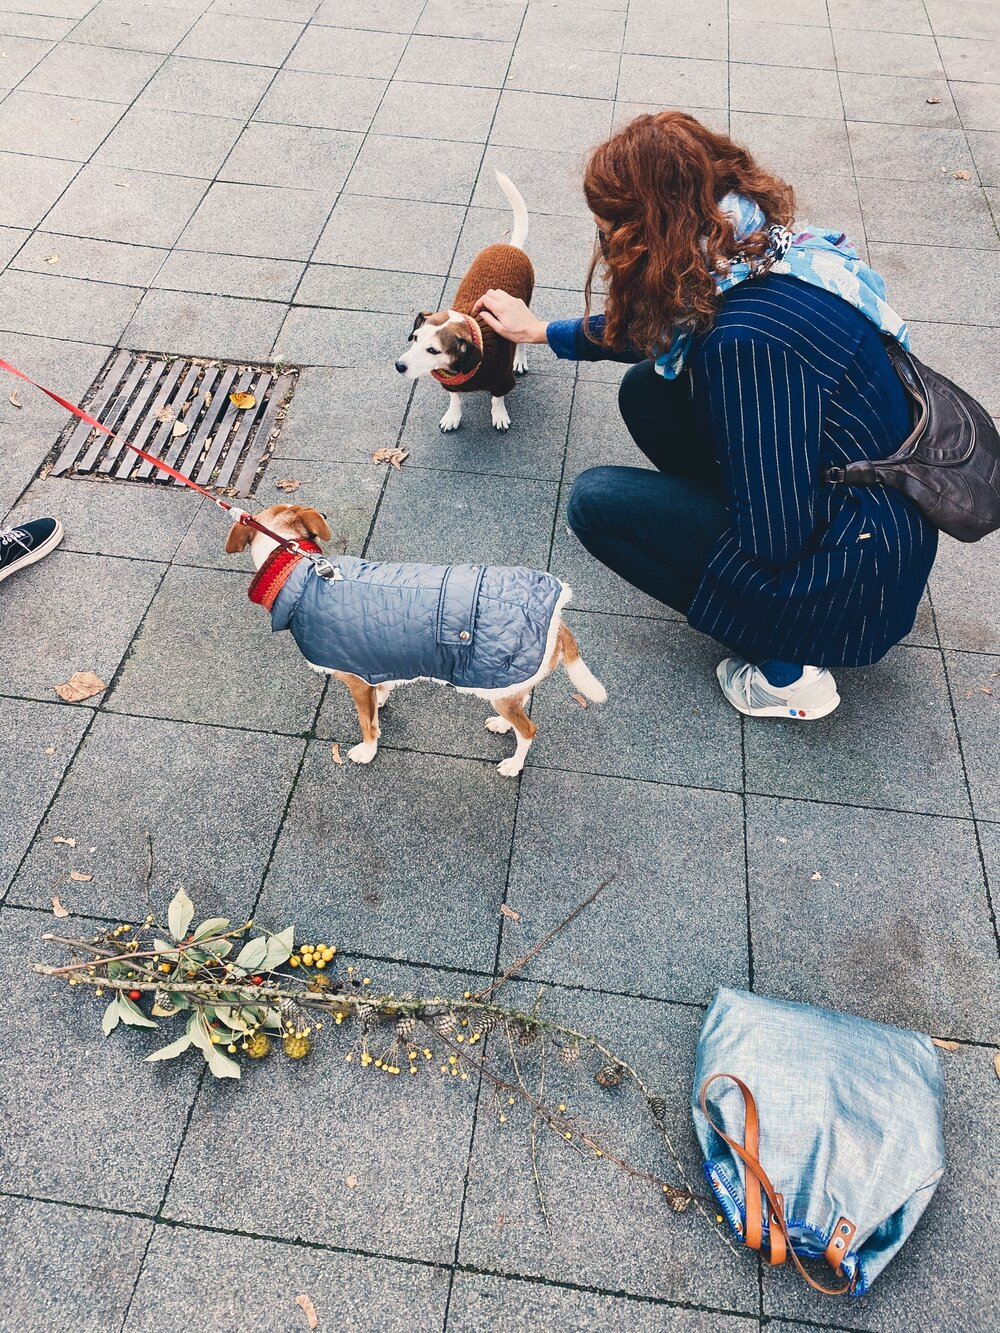 Meeting furry friends with stylish sweaters on